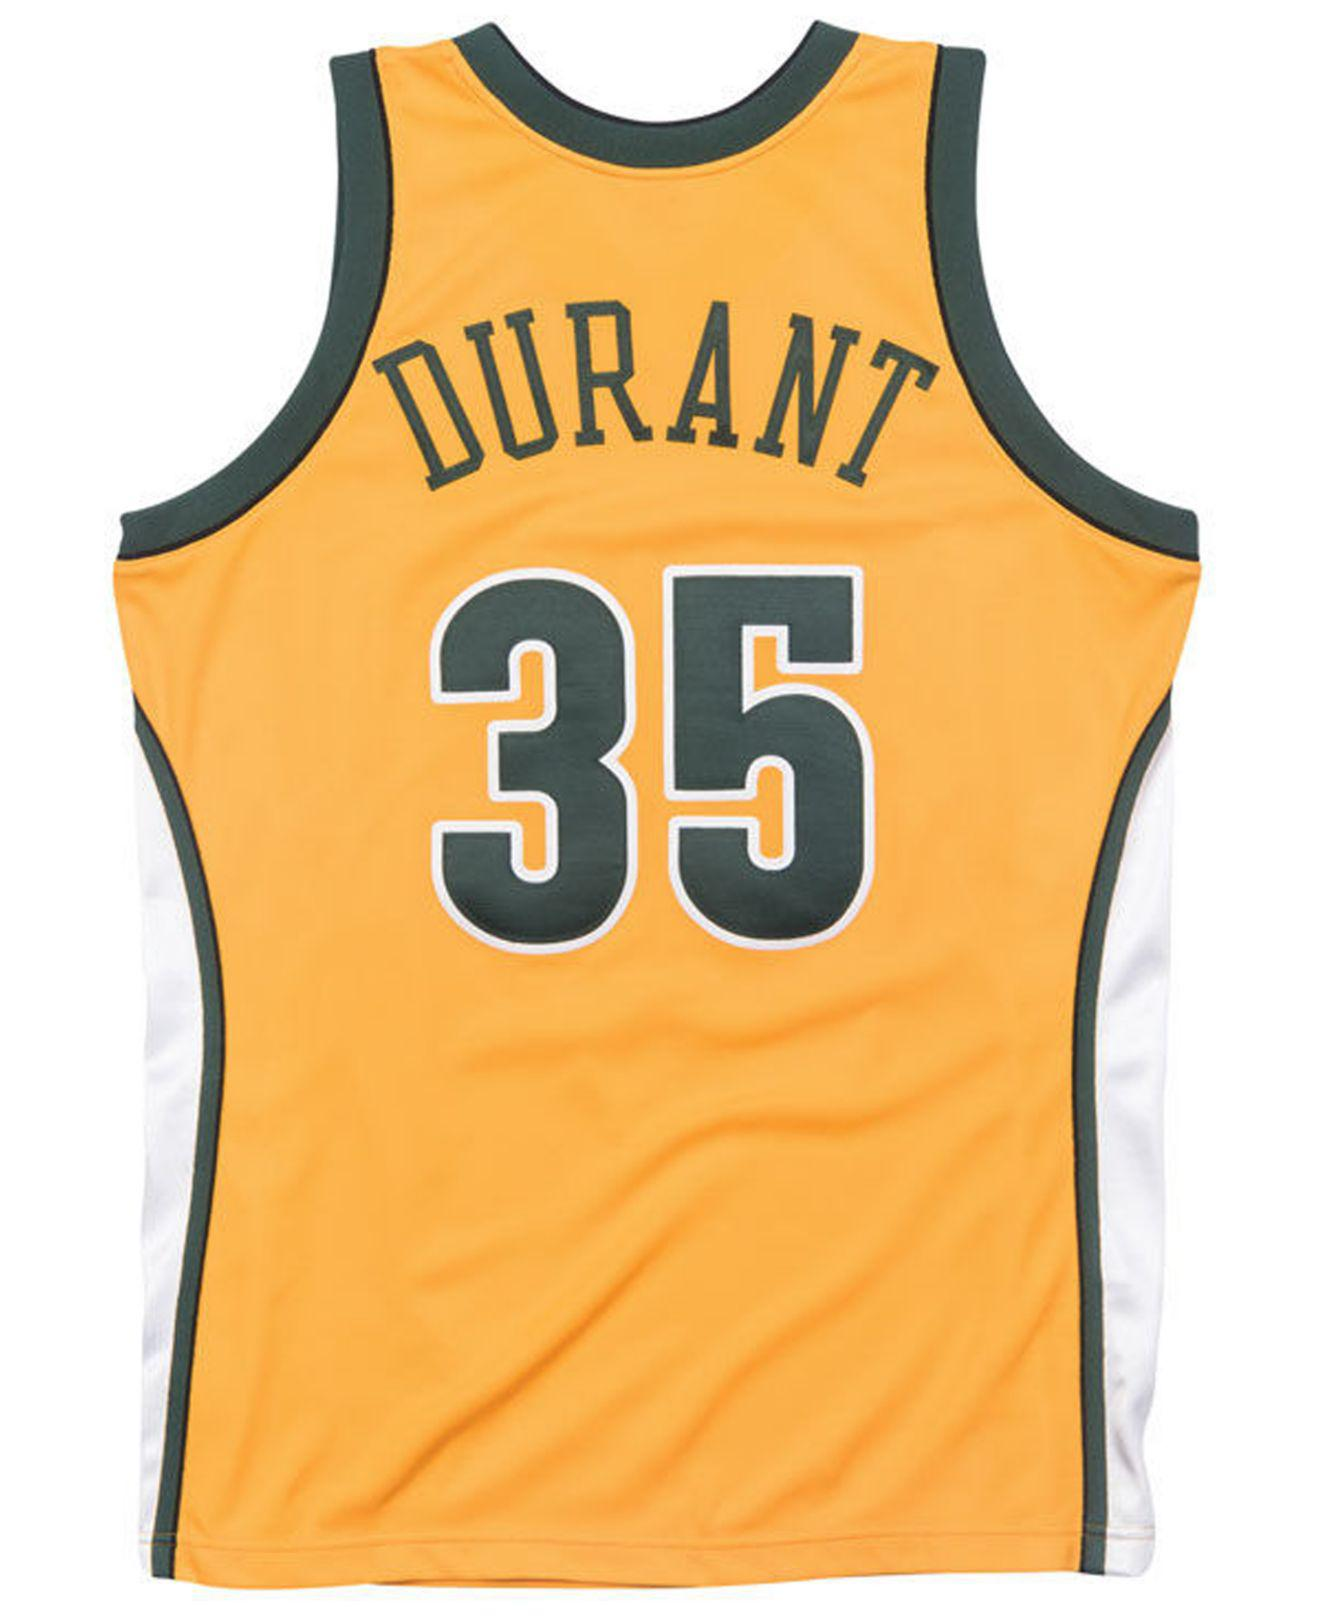 b429d425009 ... netherlands lyst mitchell ness kevin durant seattle supersonics  authentic jersey in metallic for men f4e9d aec4d